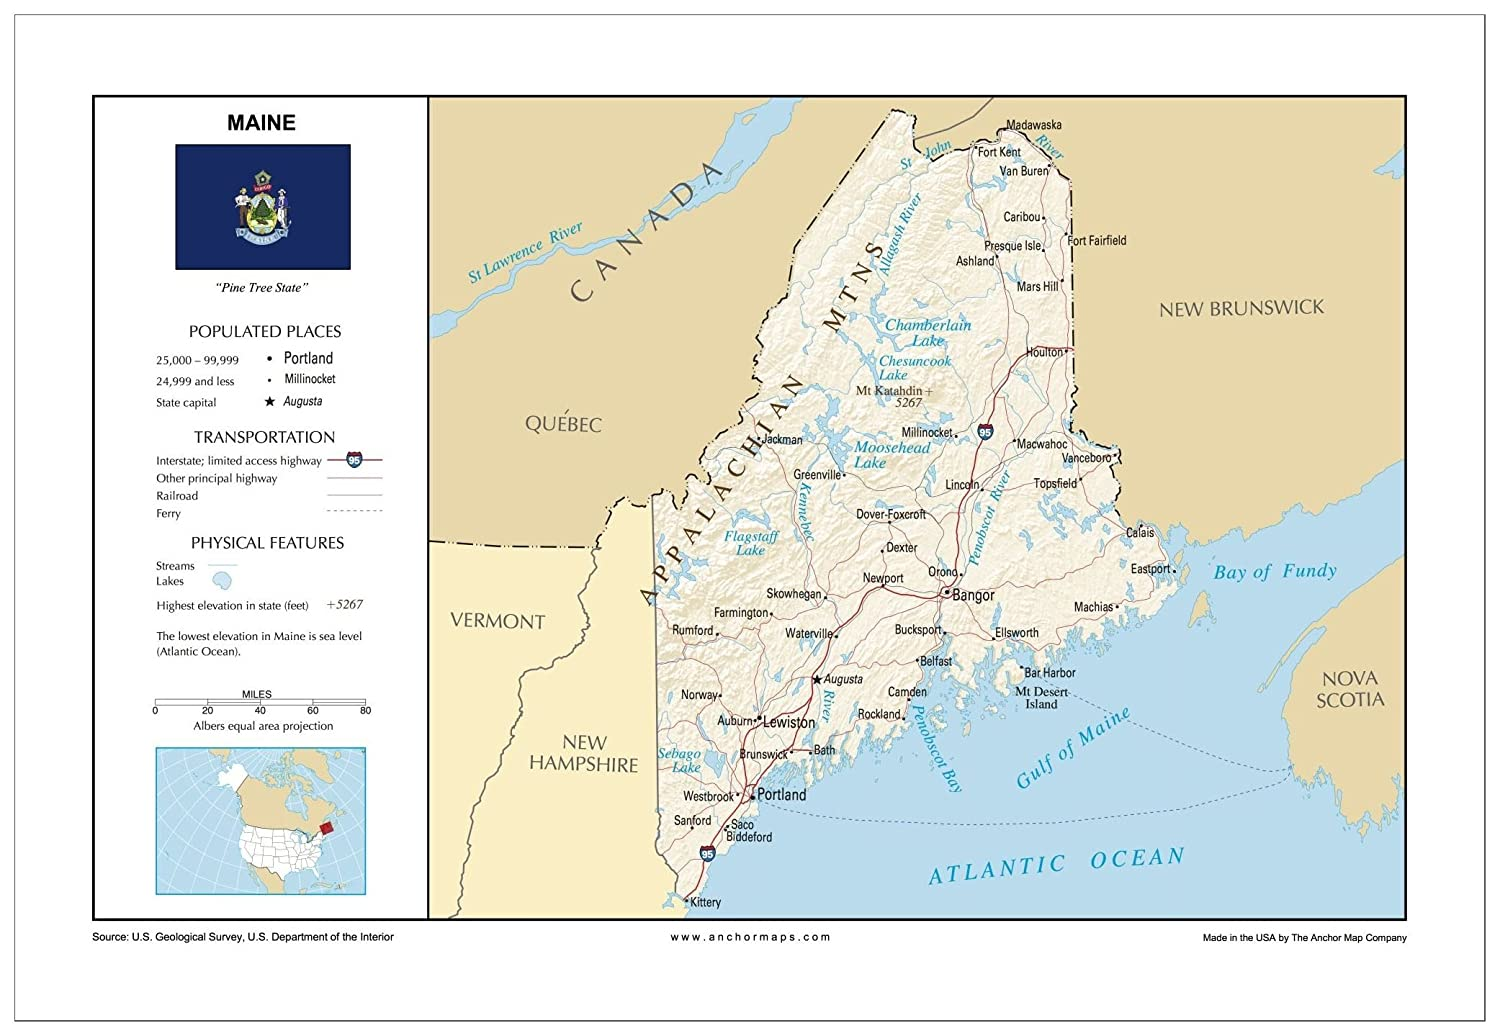 Amazon.com : 13x19 Maine General Reference Wall Map - Anchor ...